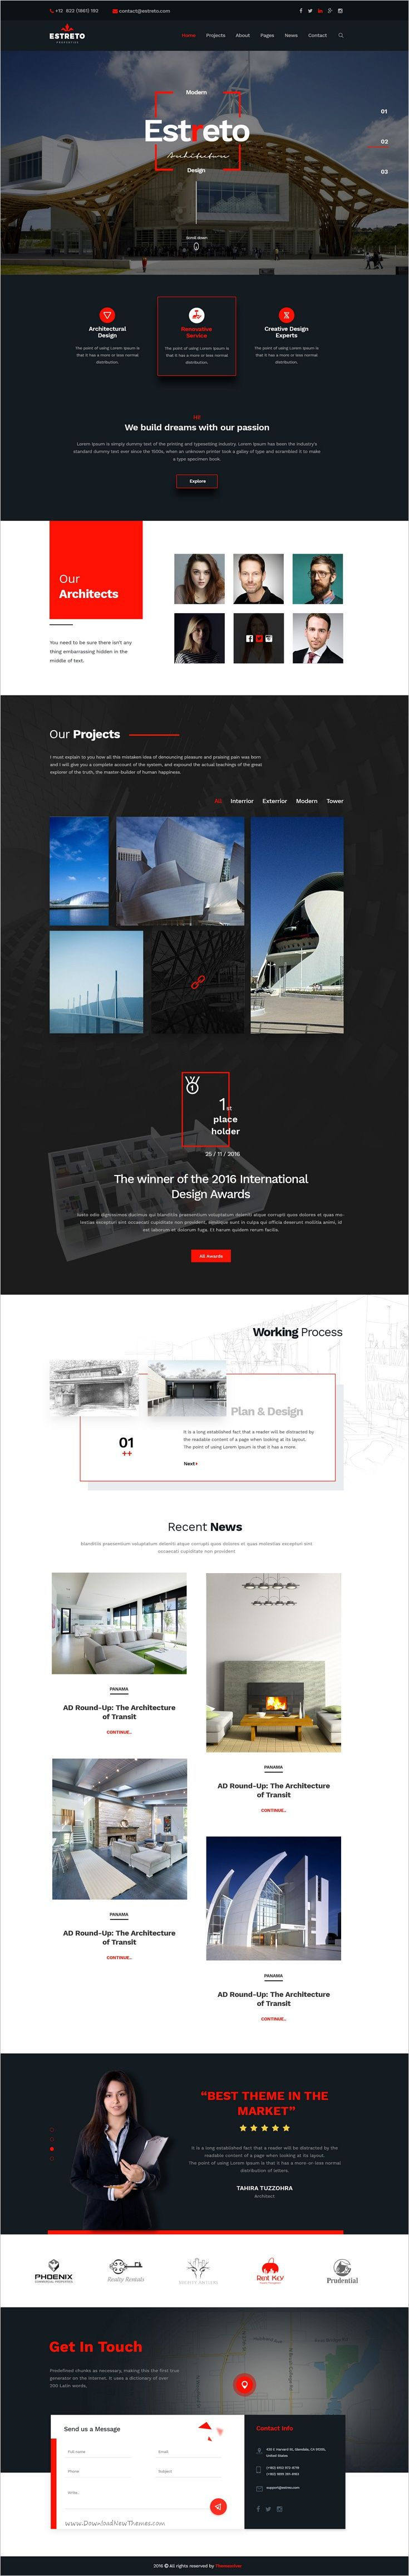 Estreto is a wonderful #PSD #Template for Real Estate, #Property, Architecture or Construction company #websites with 9 homepage layouts and 26 organized PSD pages download now➩ https://themeforest.net/item/estreto-real-estate-property-architecture-construction-psd-template/18528180?ref=Datasata